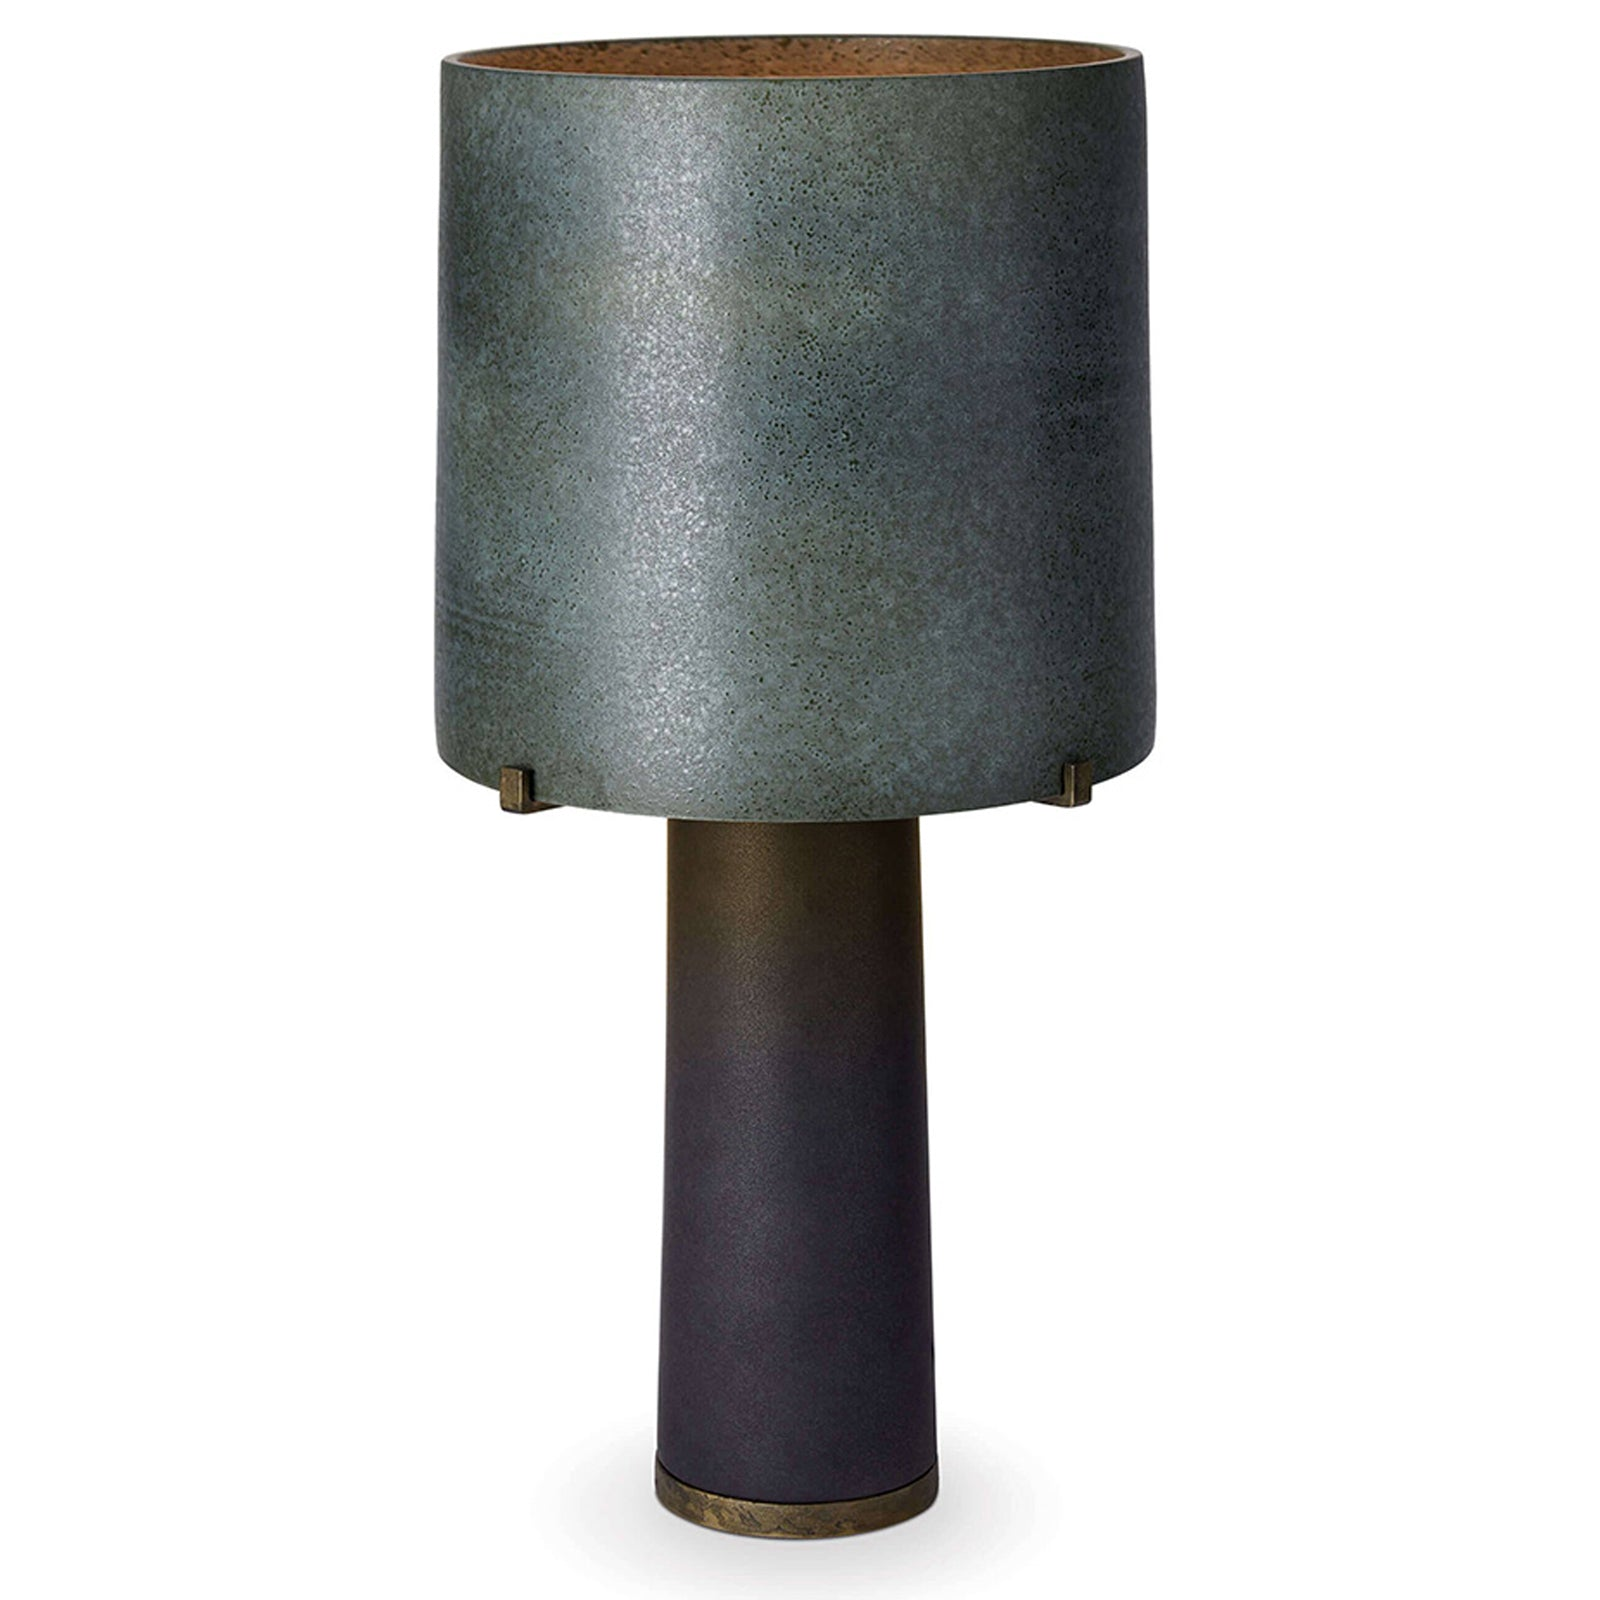 Pakal Table Lamp - Green Shade & Black Base